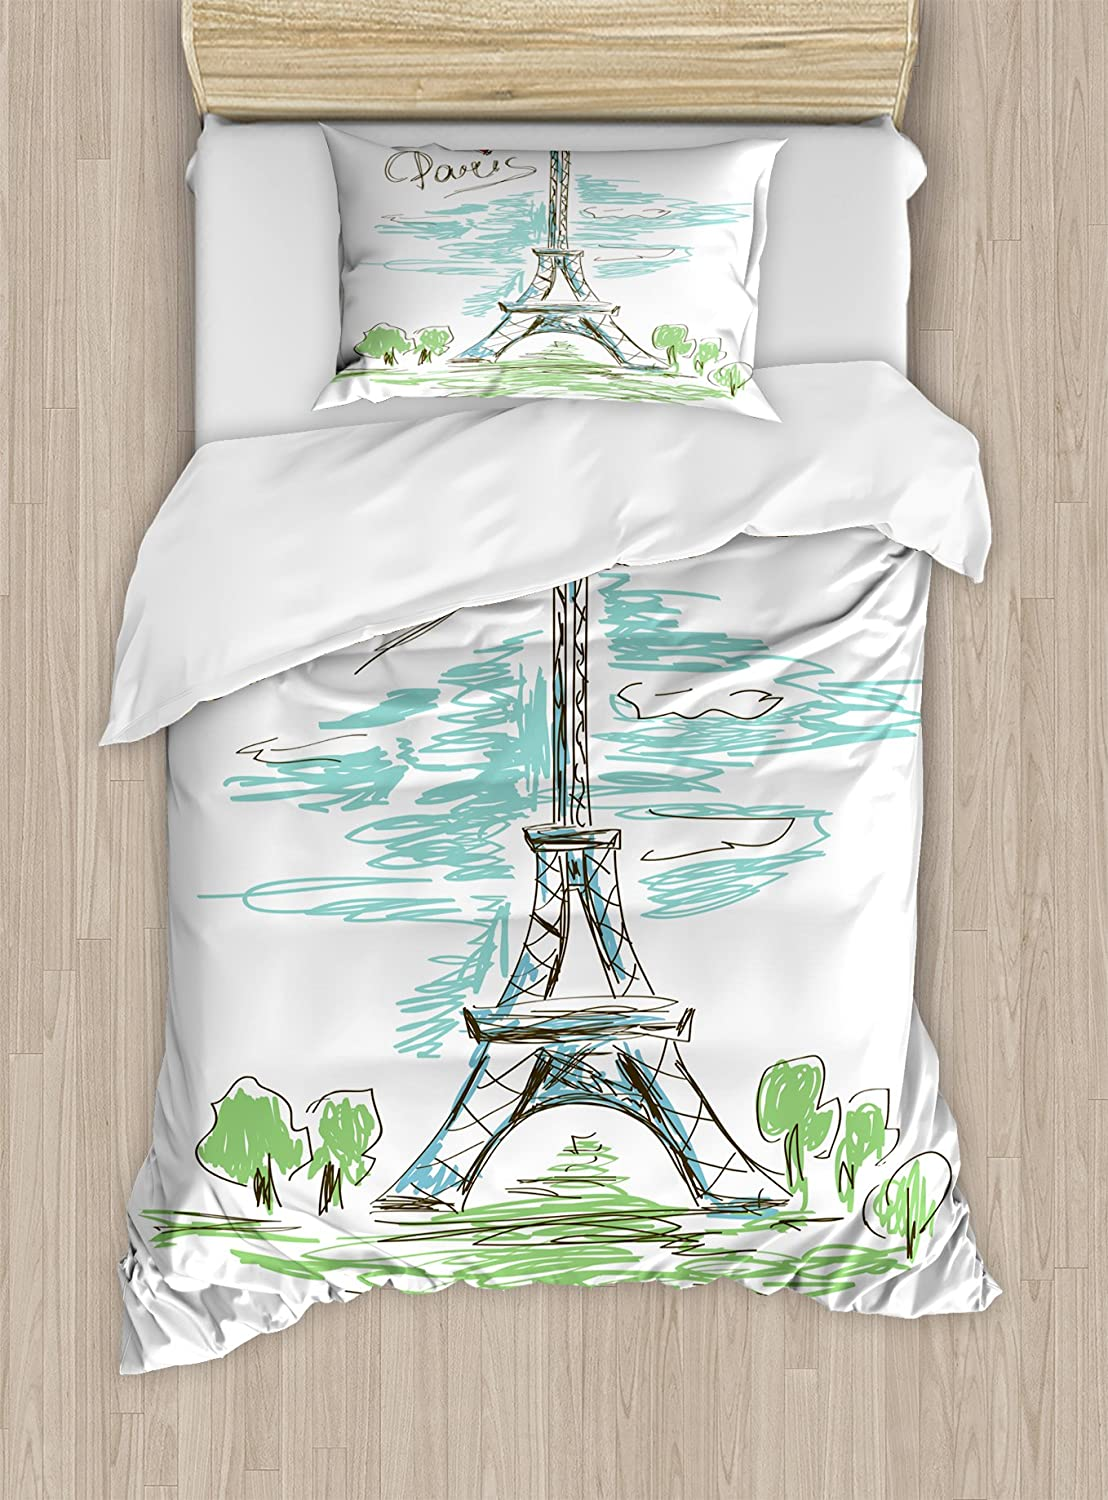 Paris Duvet Cover Set By Ambesonne Touristic Colorful Sketch Of Merk Bed Jacquard Eiffel Tower In French Style